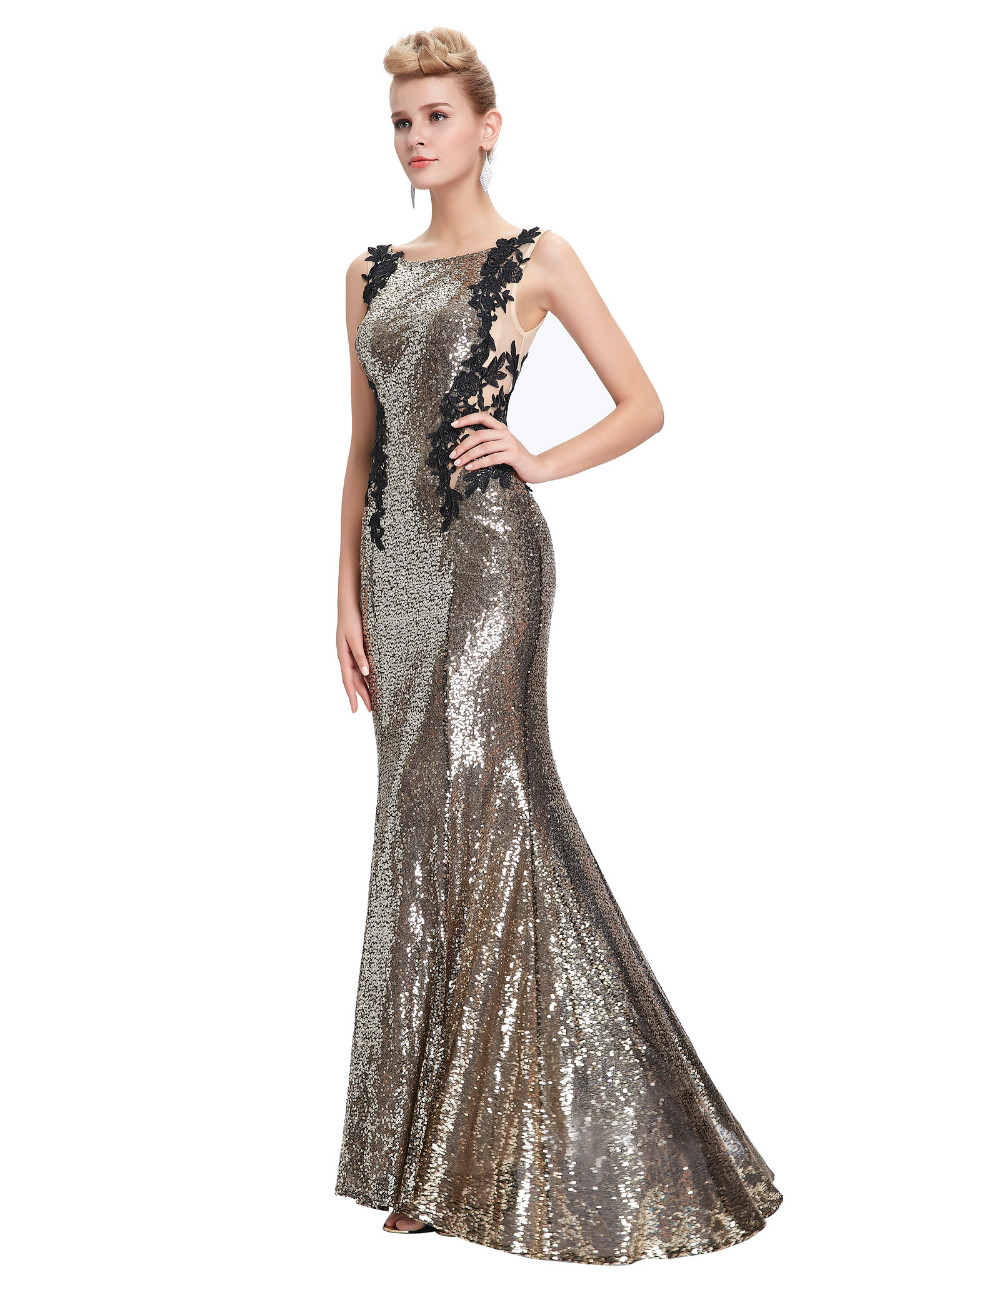 Kate Kasin Mermaid Bridesmaid Dresses Long Dress for Weddings Party Gown 2017 Grey Blue Black Sequin Bridesmaid Dress 0072 11